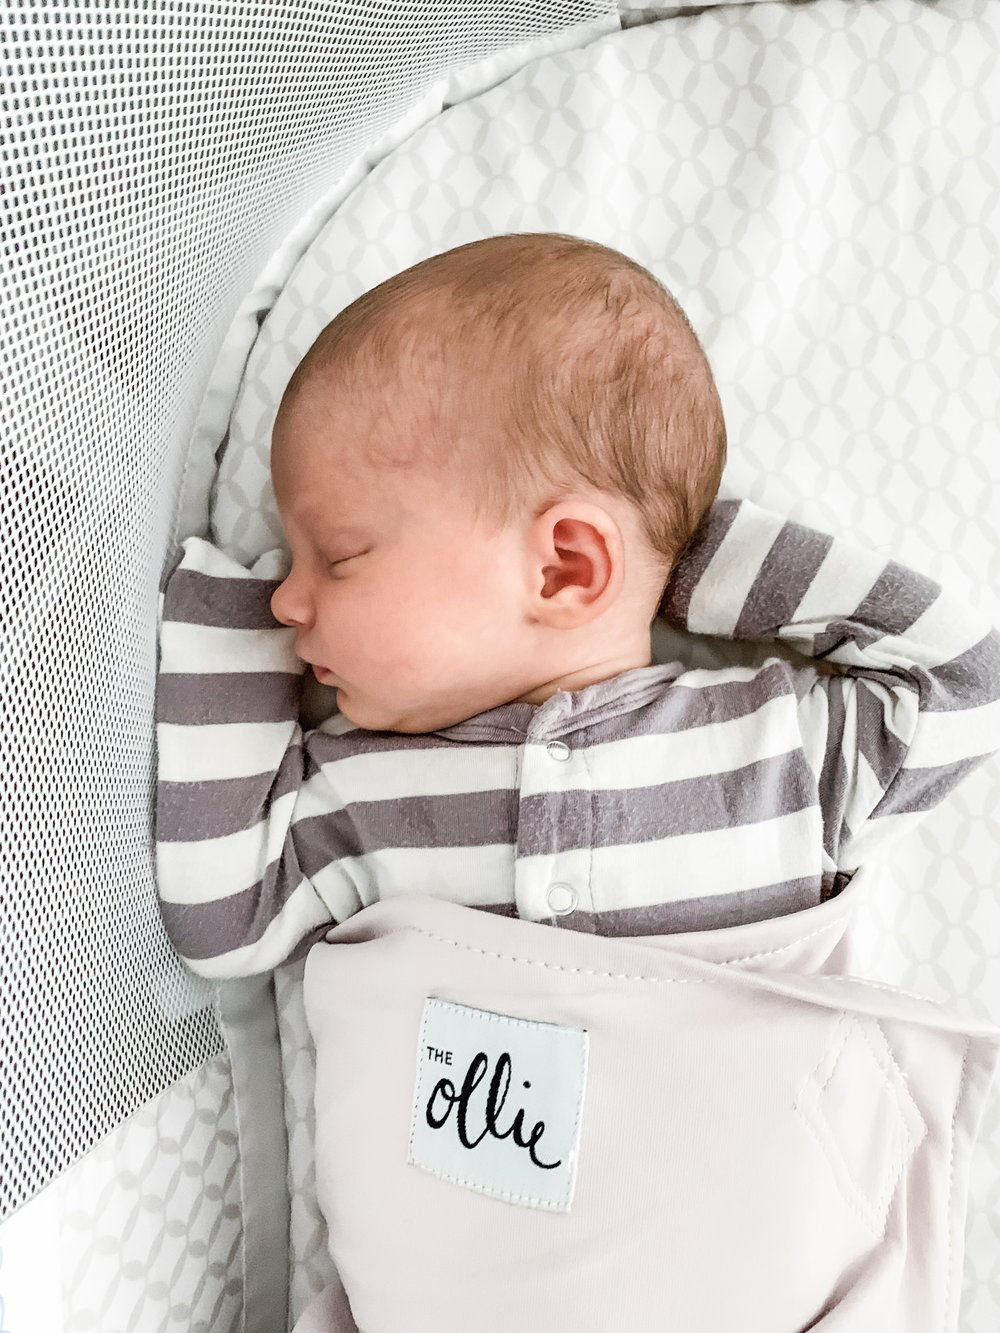 She got her arms out this time (totally user error on our part) but most of the time she's a snug little burrito and we love it!